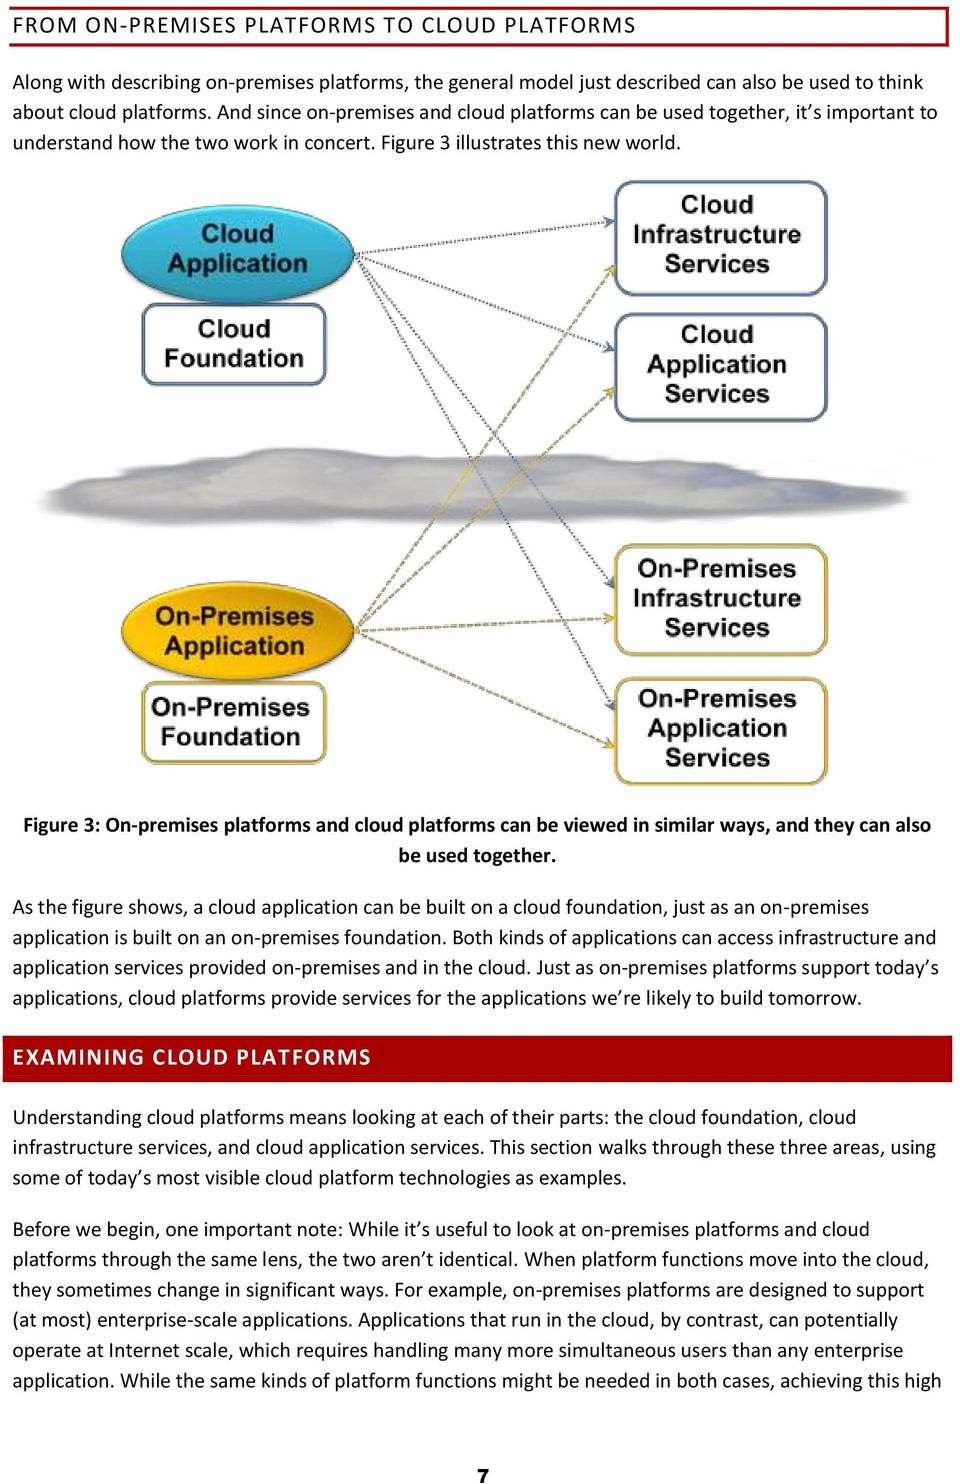 Figure 3: On-premises platforms and cloud platforms can be viewed in similar ways, and they can also be used together.